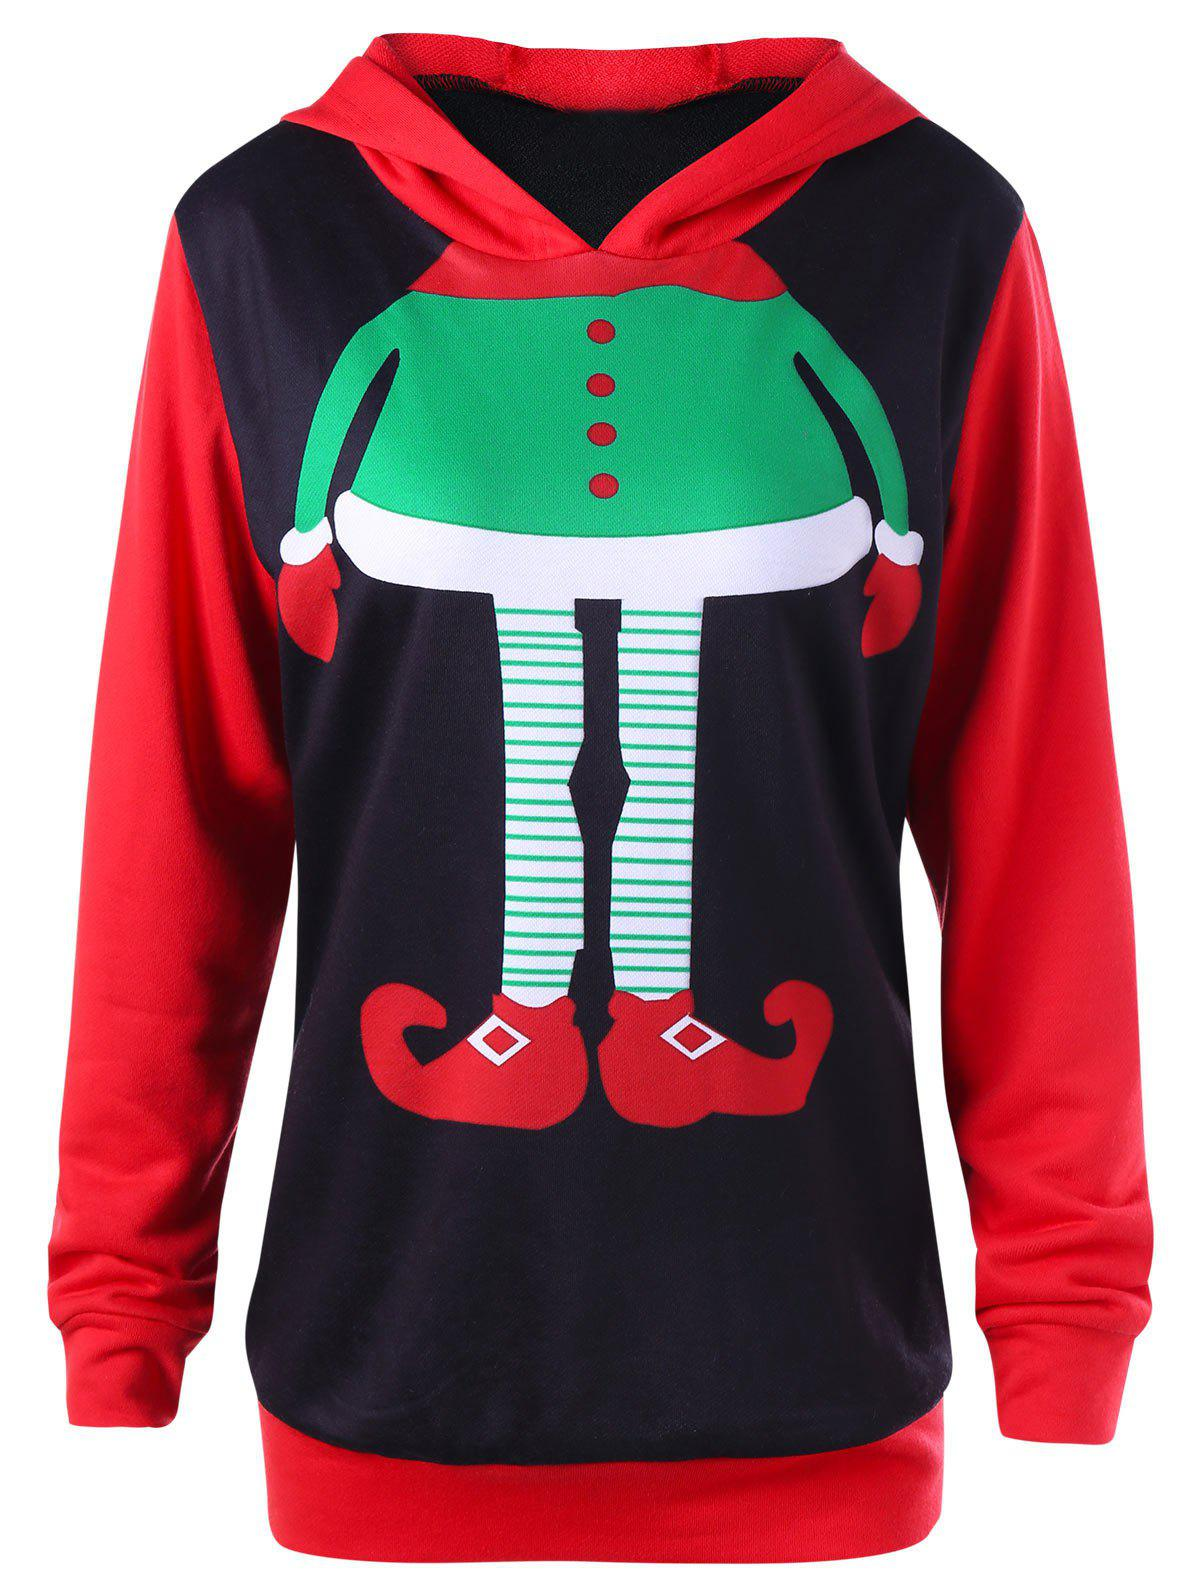 Plus Size Christmas Cartoon Printed HoodieWOMEN<br><br>Size: 5XL; Color: COLORMIX; Material: Polyester,Spandex; Shirt Length: Regular; Sleeve Length: Full; Style: Novelty; Pattern Style: Print; Season: Fall,Spring; Weight: 0.4600kg; Package Contents: 1 x Hoodie;